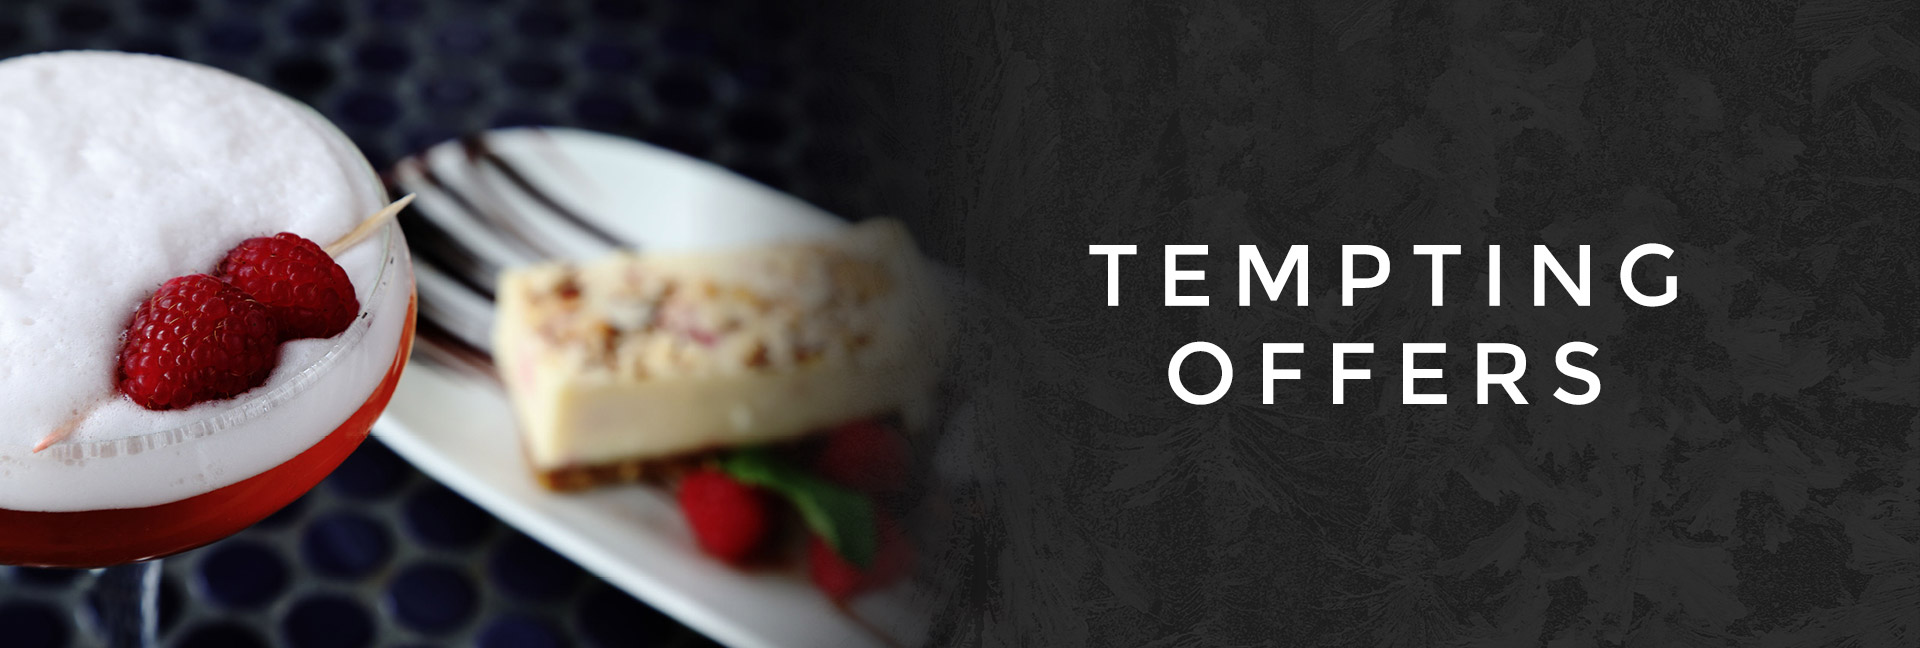 Temping offers at All Bar One New Oxford Street